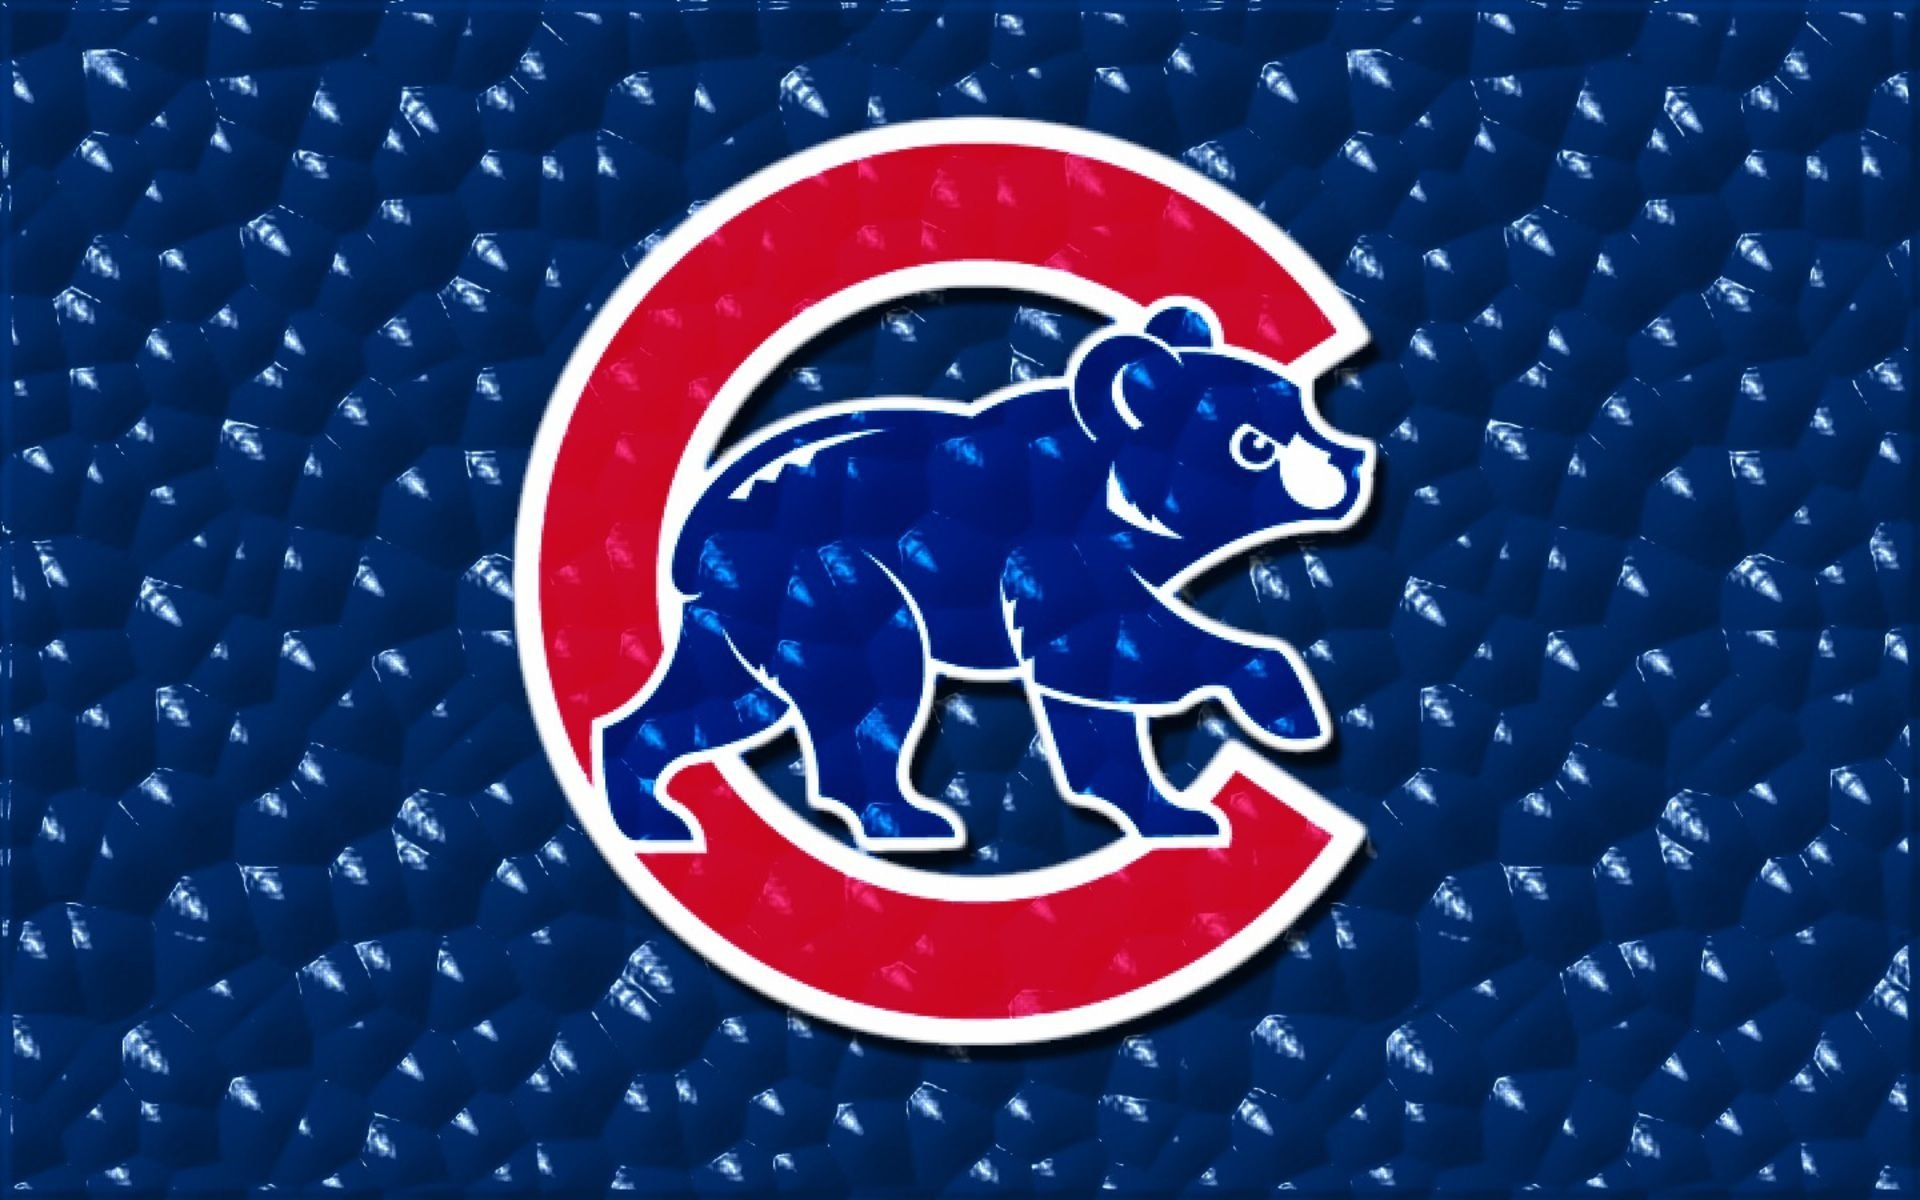 HD Wallpaper | Background Image ID:474604. 1920x1200 Sports Chicago Cubs